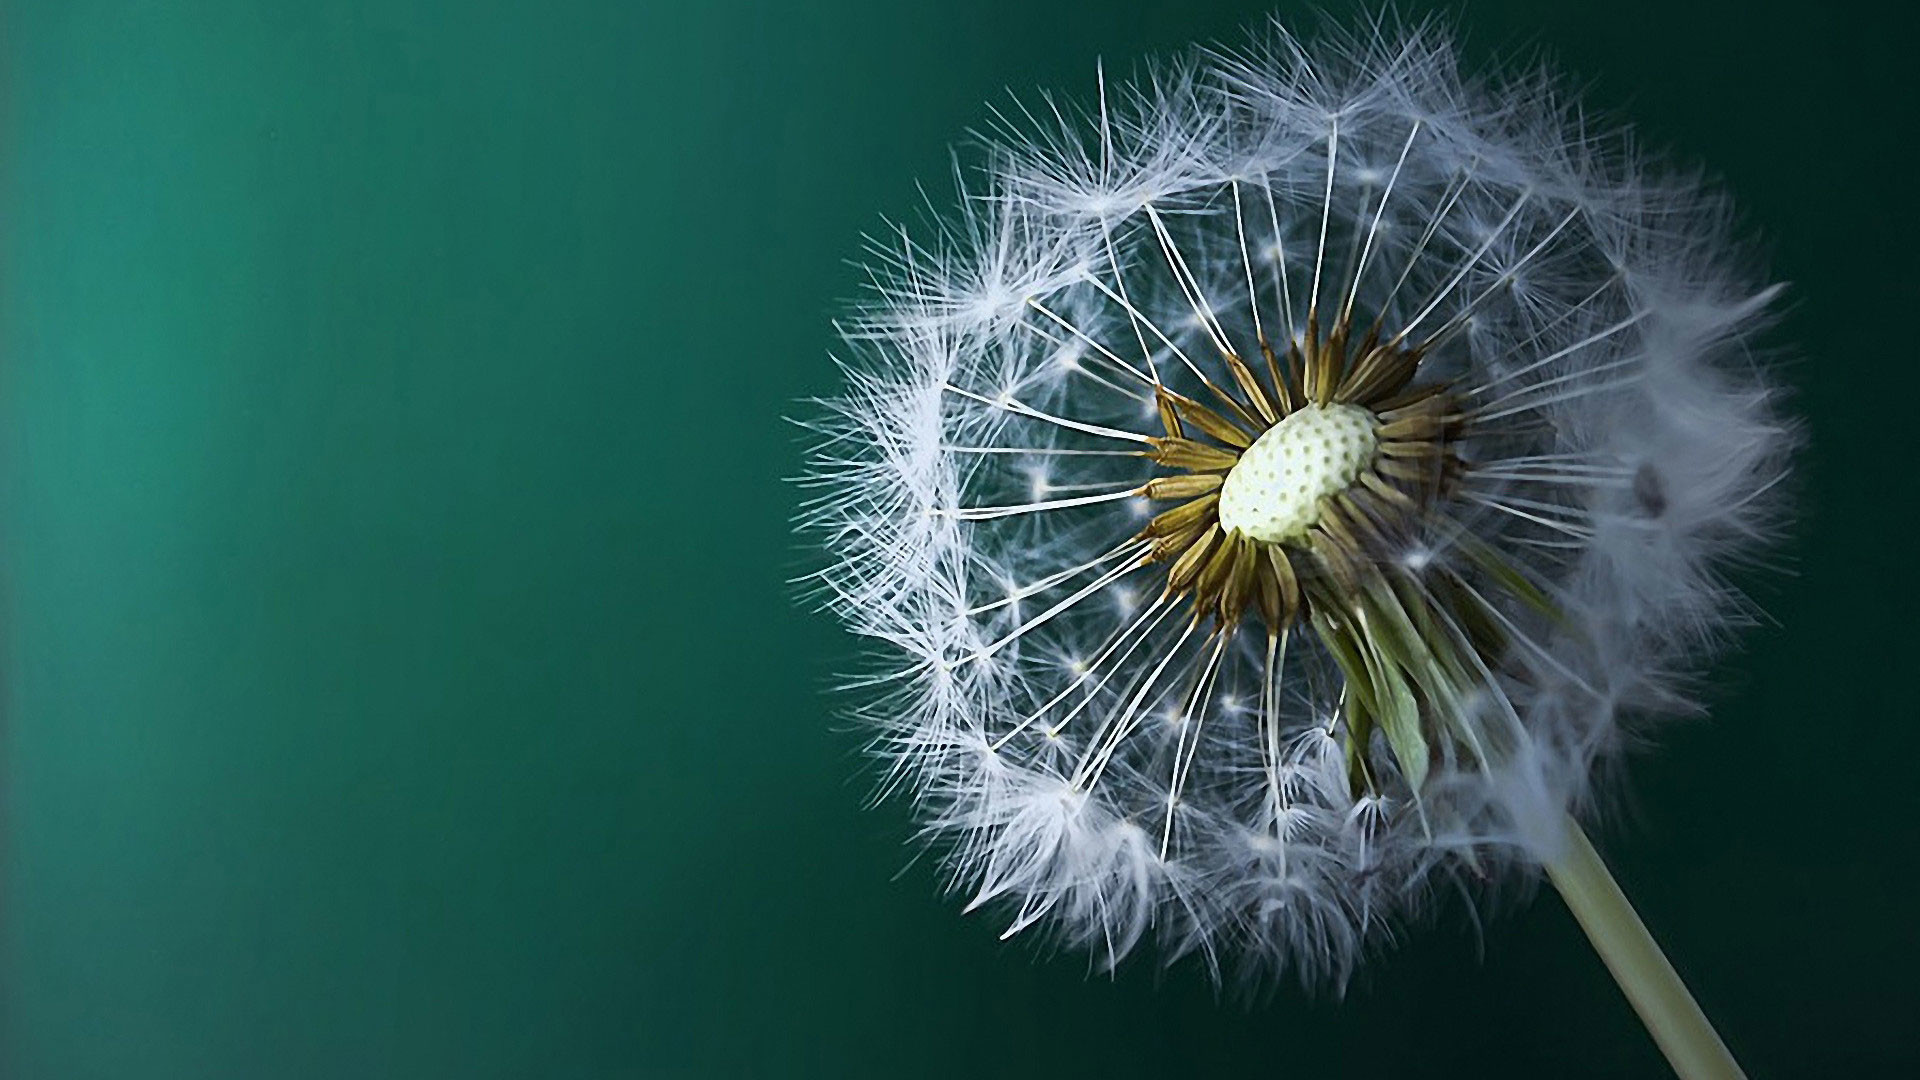 hd pics photos best stunning dandelion macro nature awesome hd quality  desktop background wallpaper